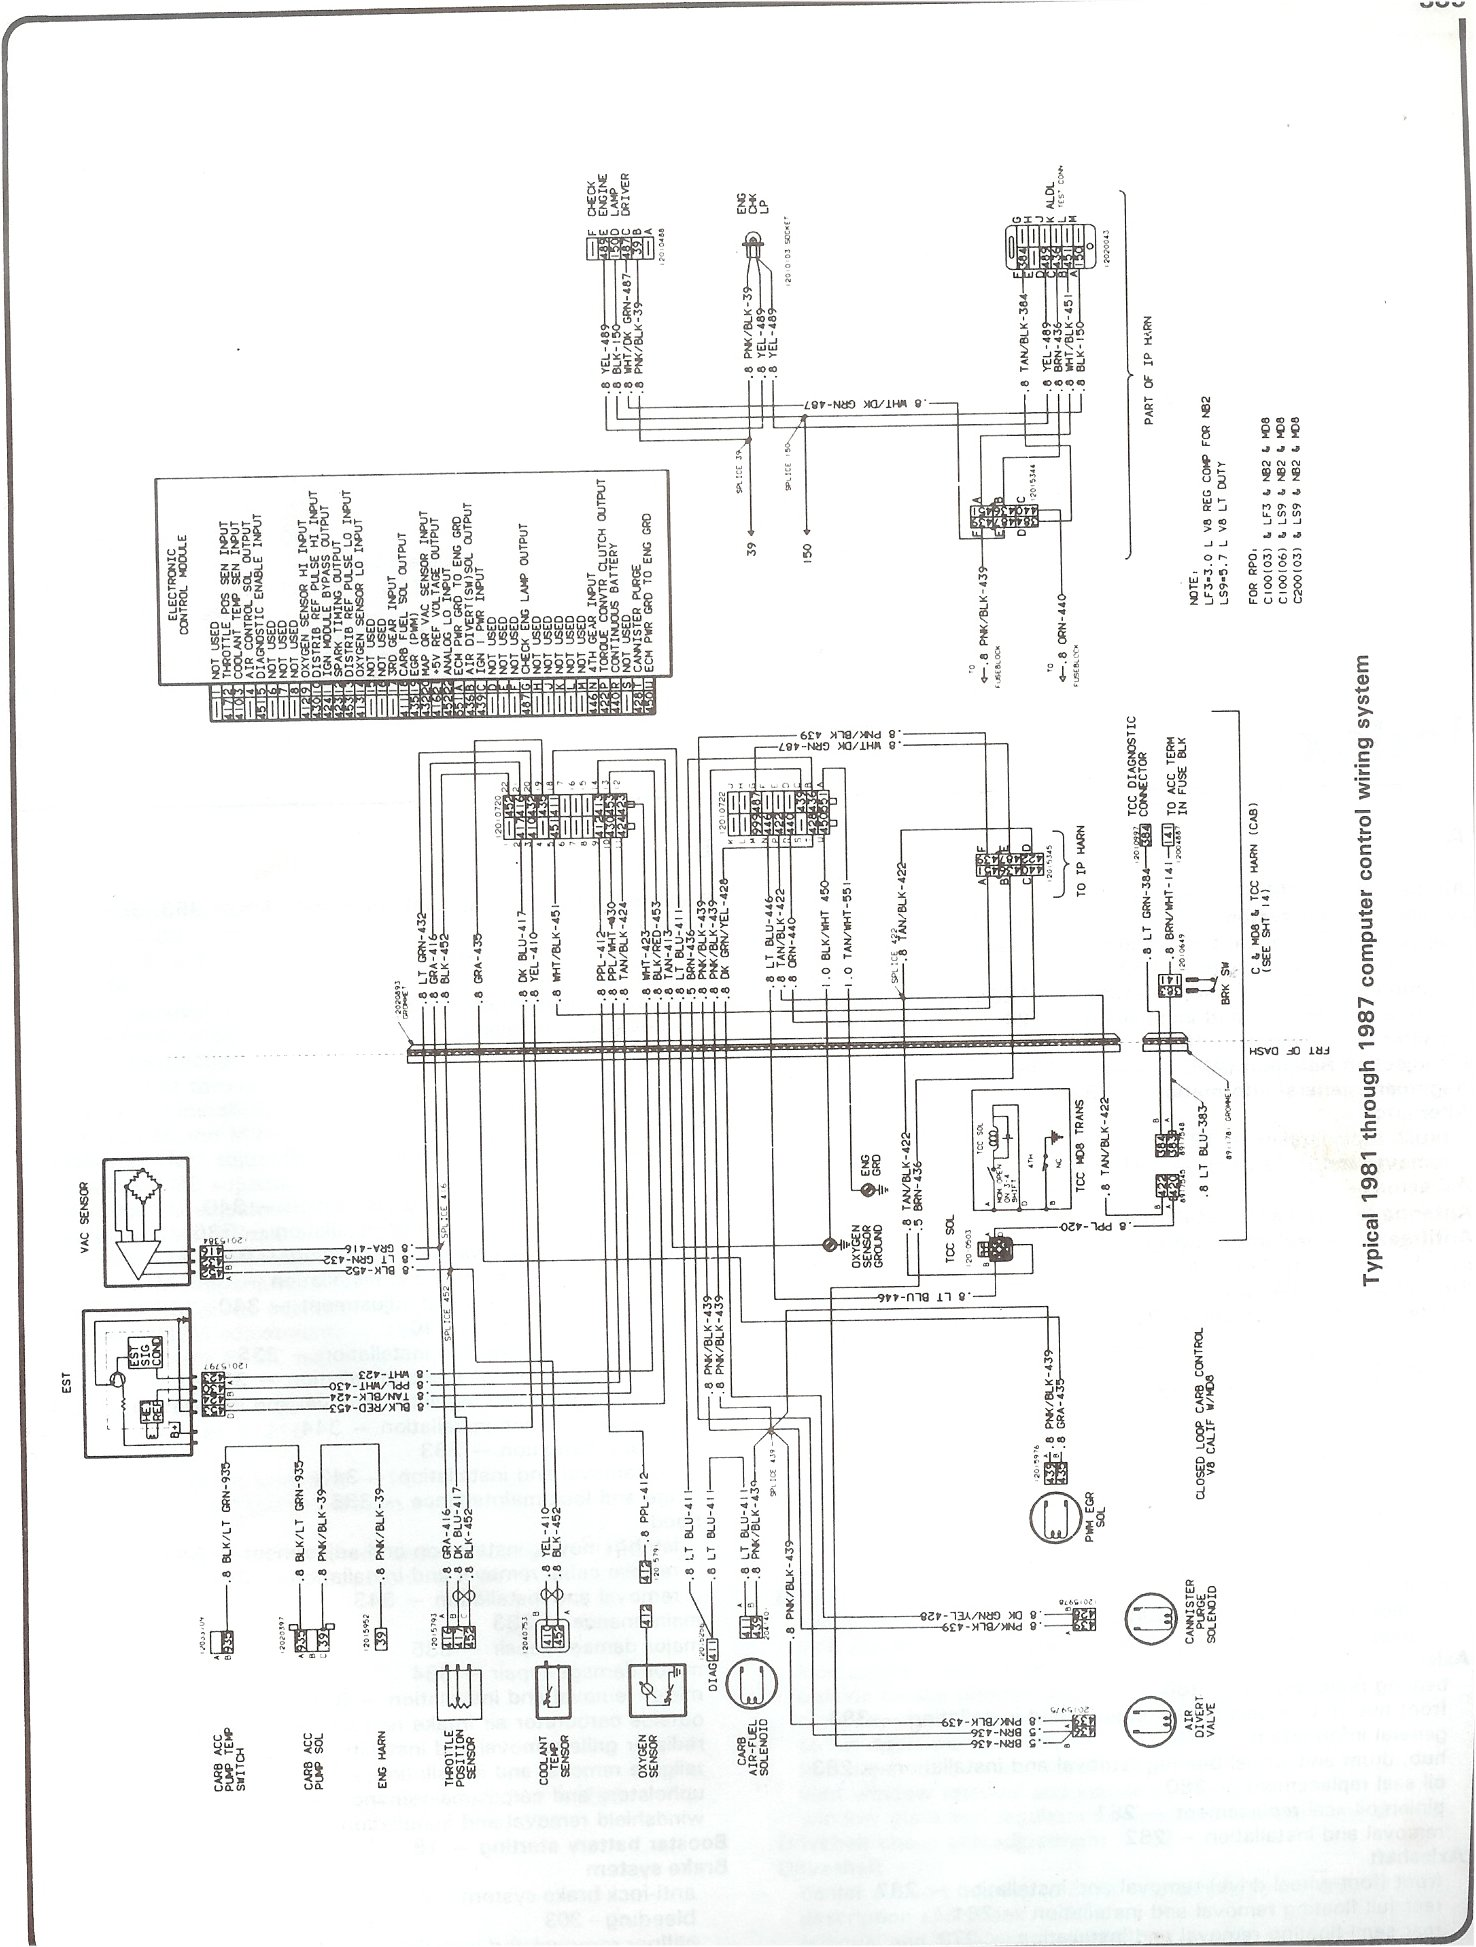 97 Pontiac 3 4 Engine Diagram Guide And Troubleshooting Of Wiring 1997 Grand Prix Diagrams Library Rh 38 Mac Happen De 2004 V6